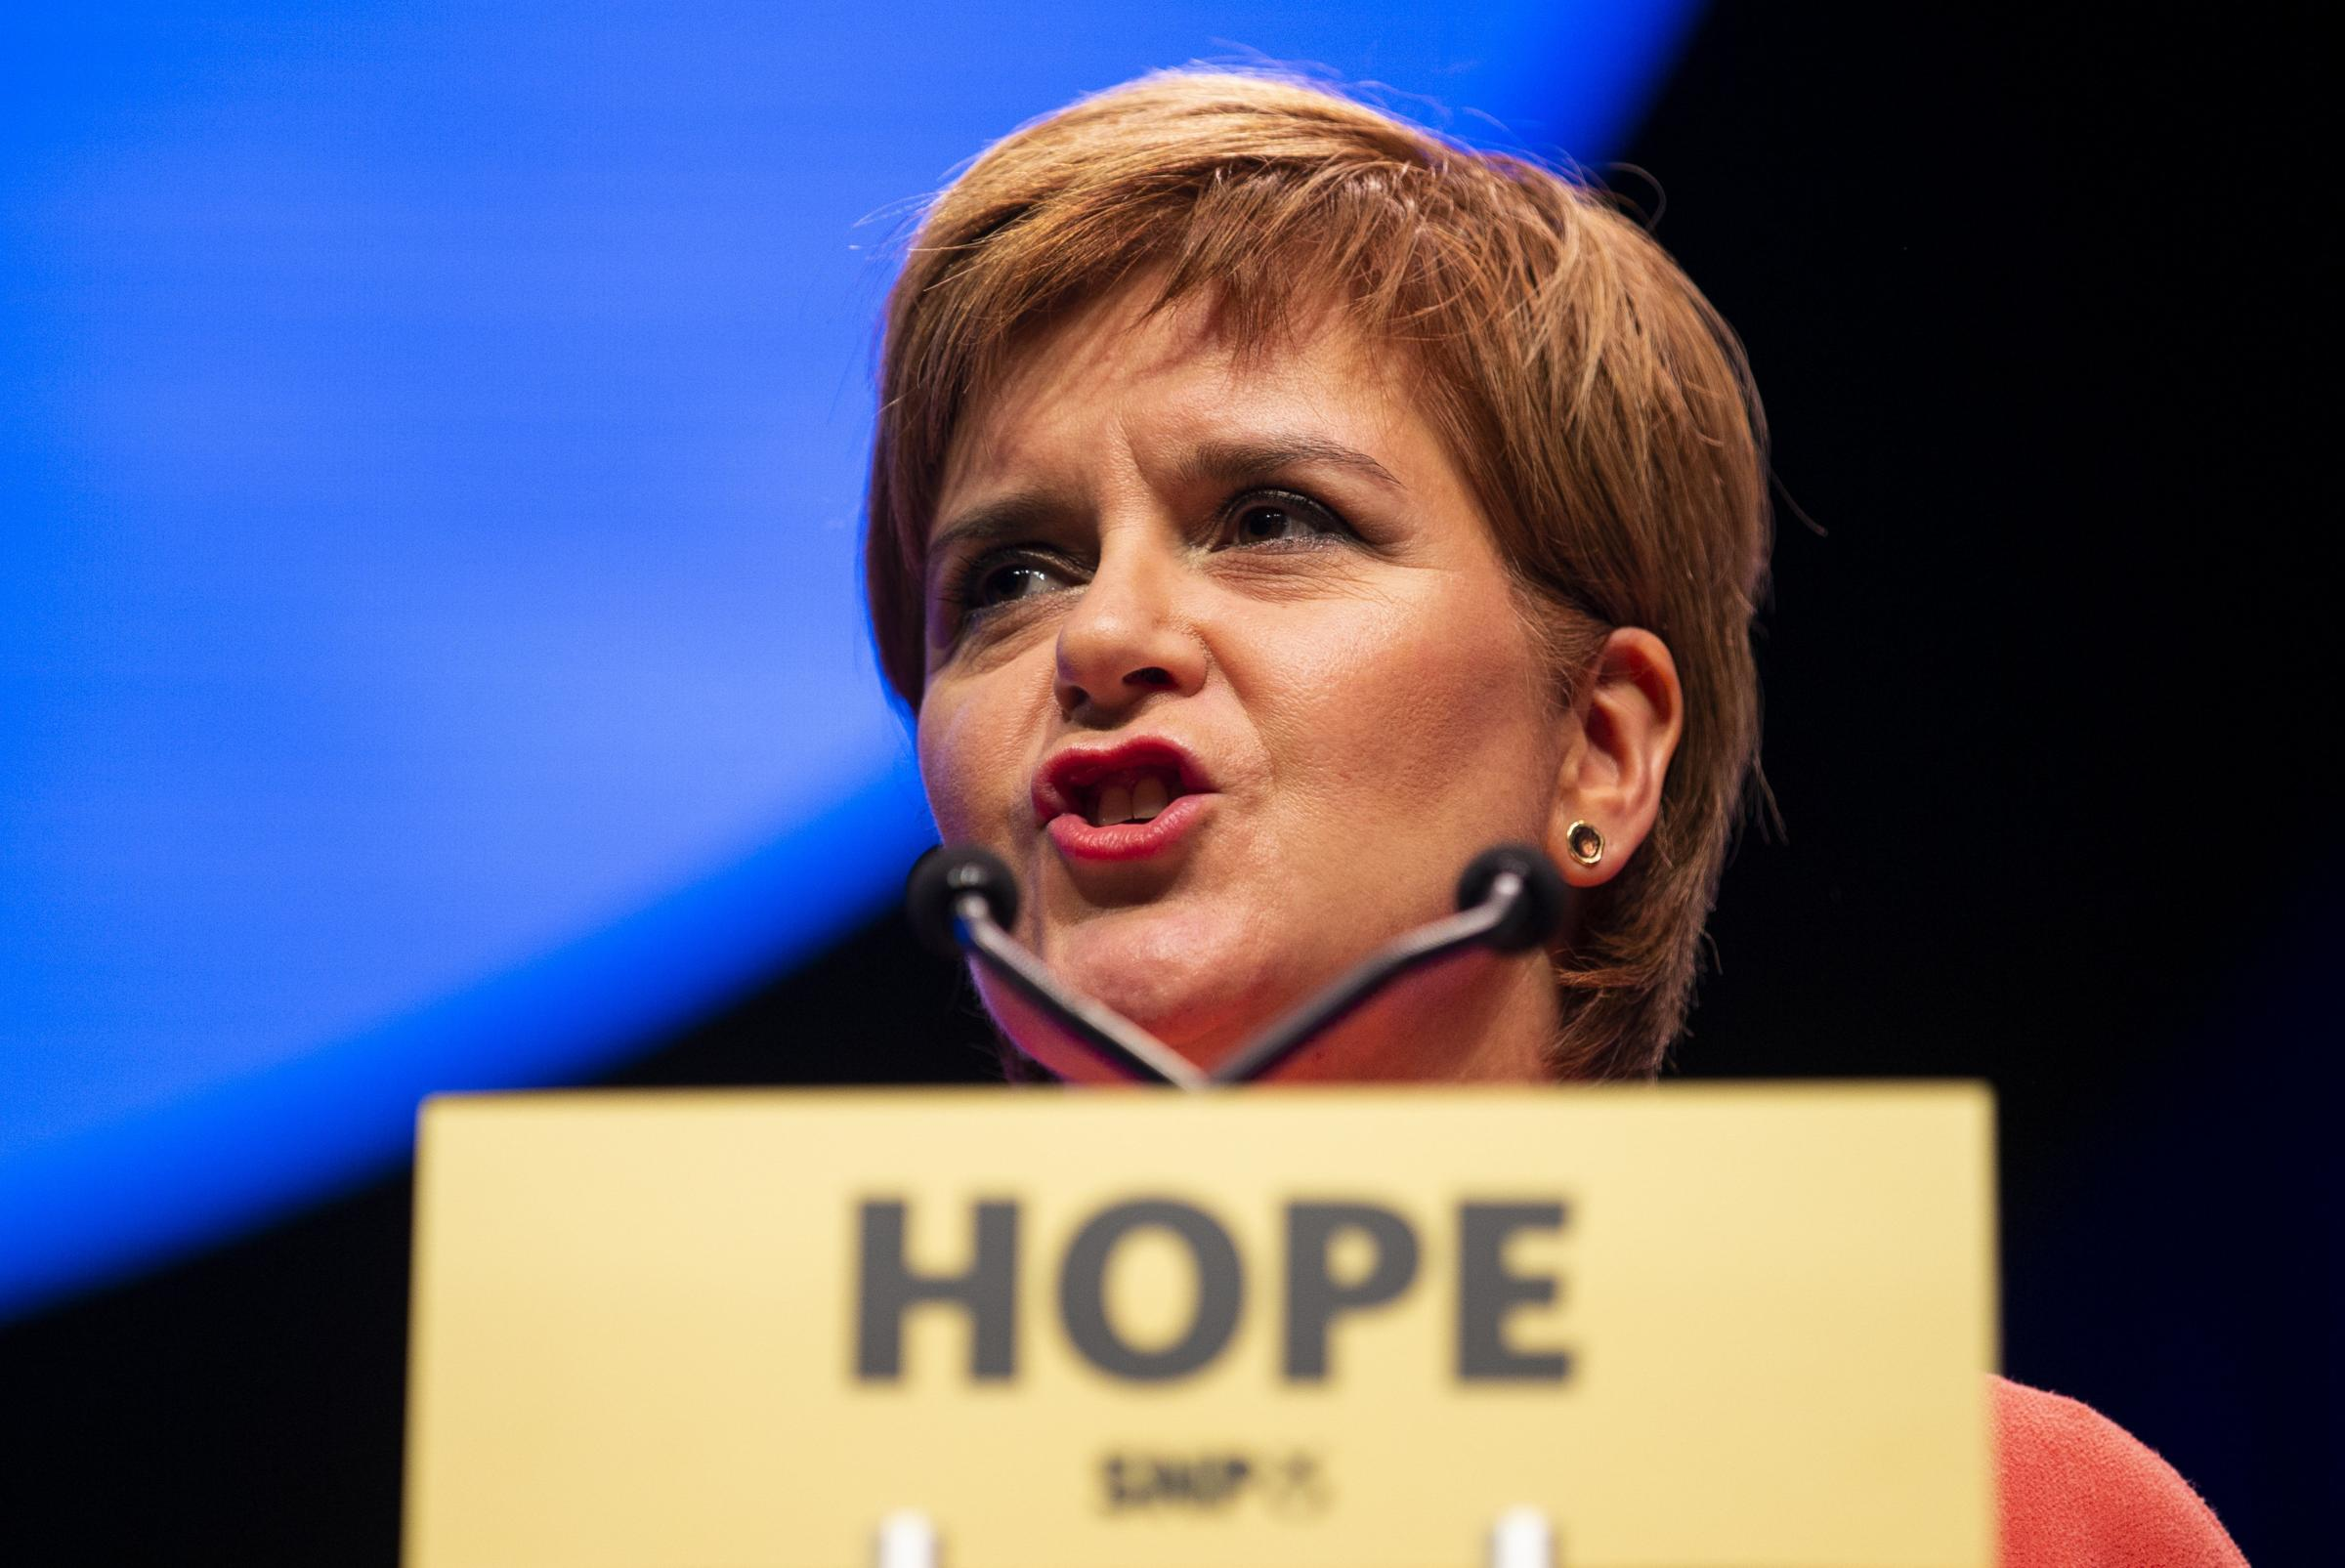 First Minister Nicola Sturgeon has an important decision to make on the timing of indyref2